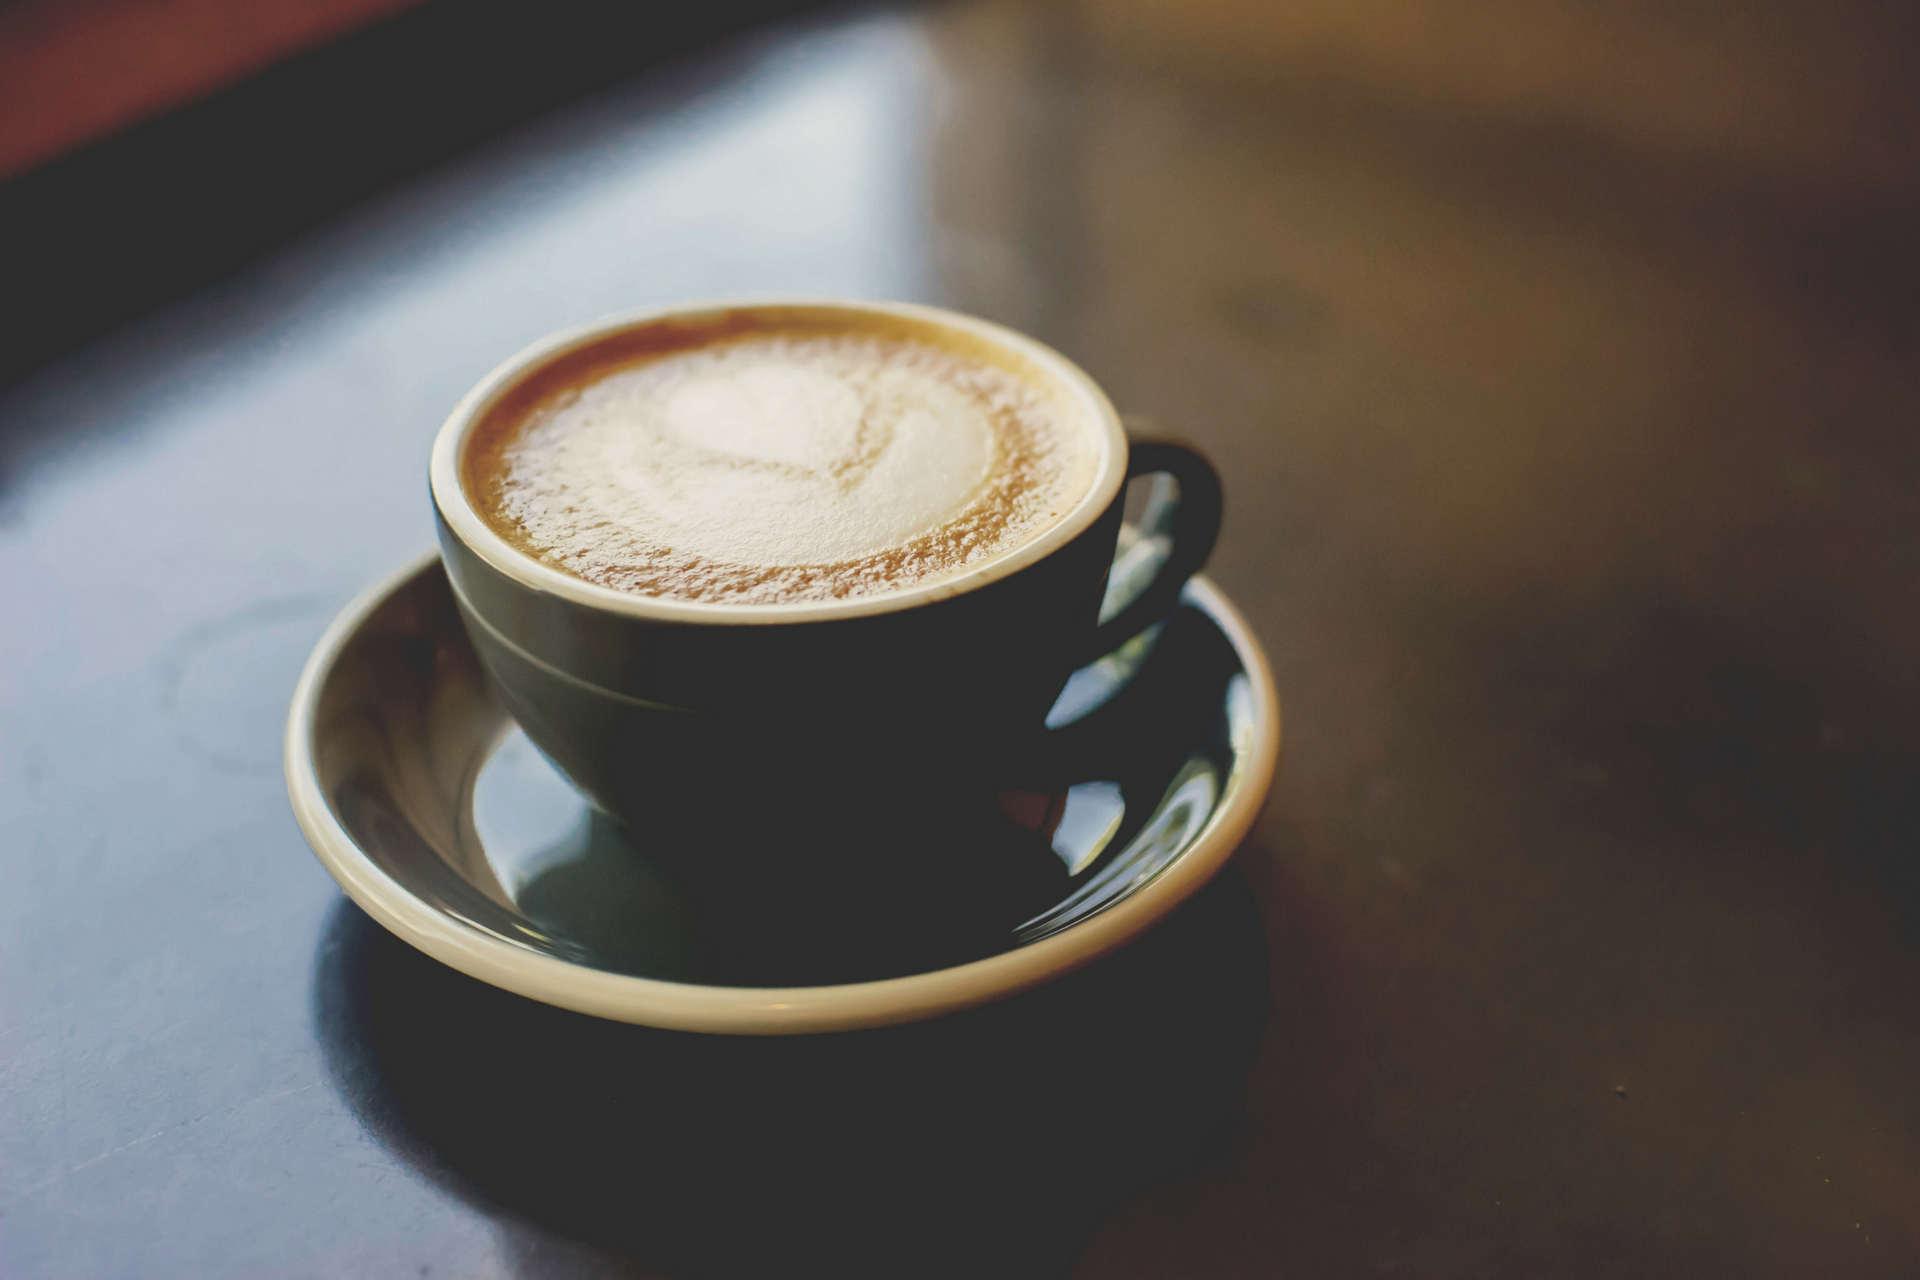 An artistic photo of a cup of coffee on a table.